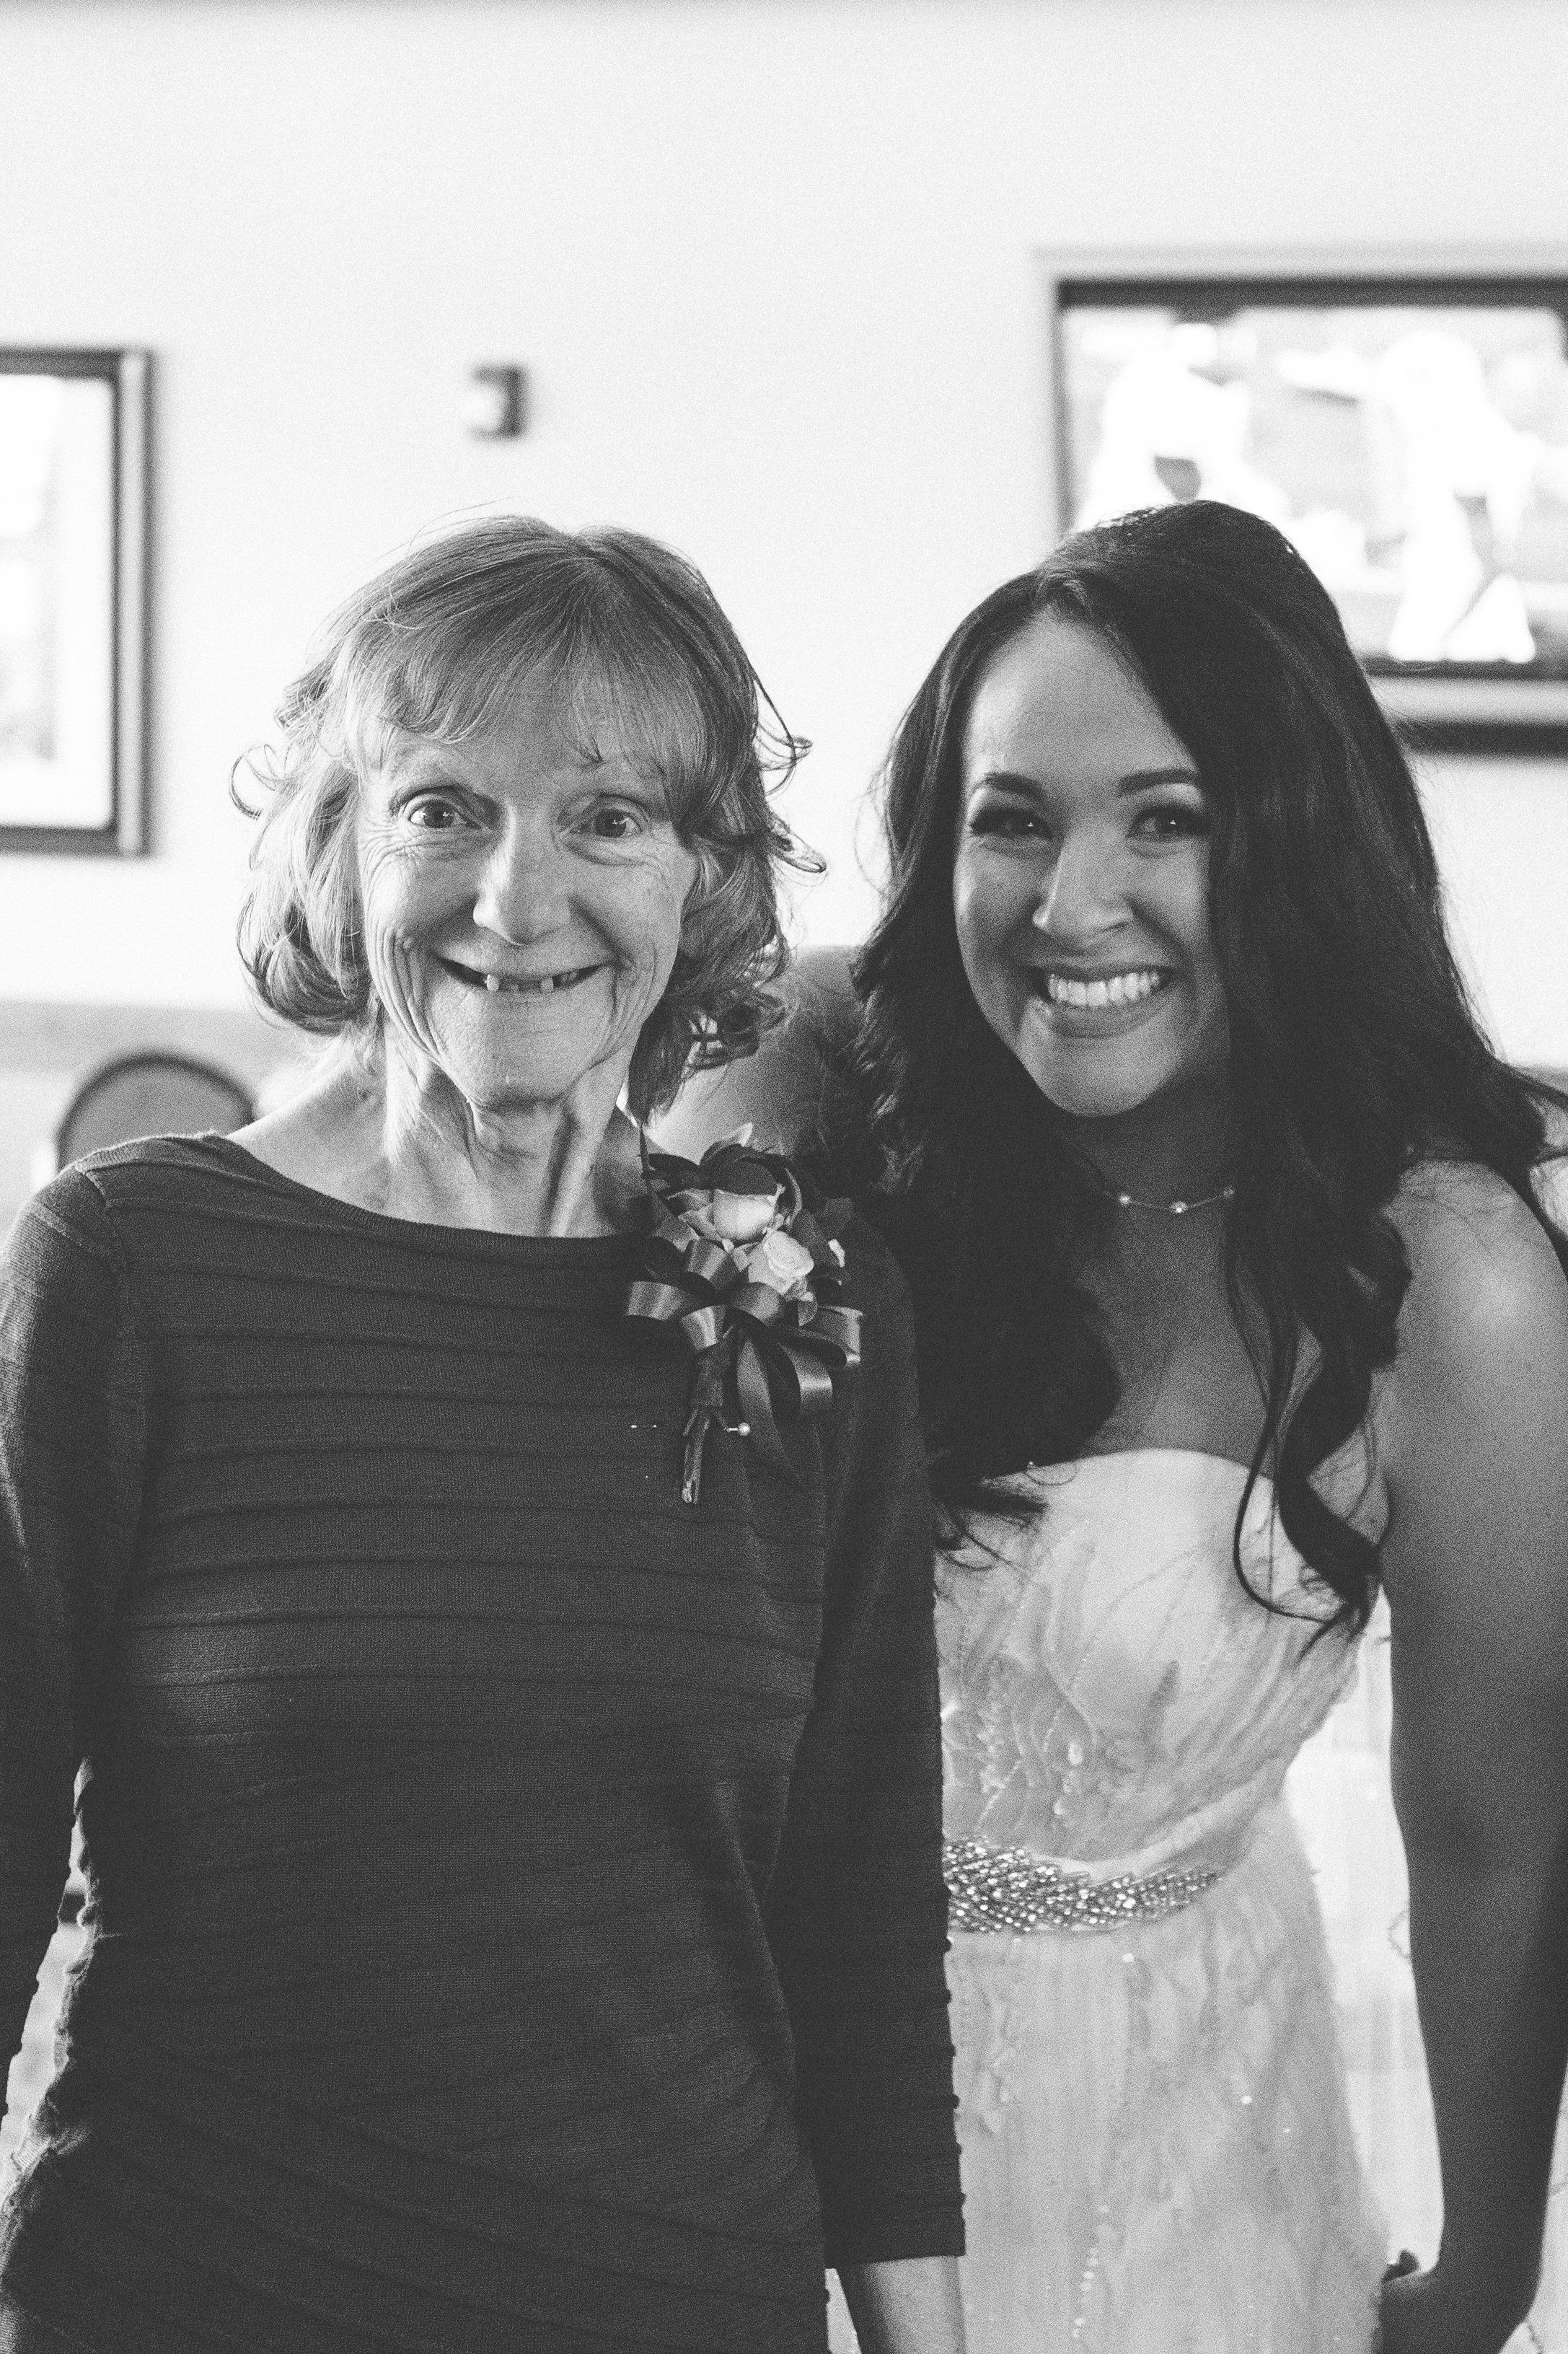 Julia Napolitano (right) poses with her mother, LInda, on her wedding day. Because Linda, 66, has advanced stages of Alzheime